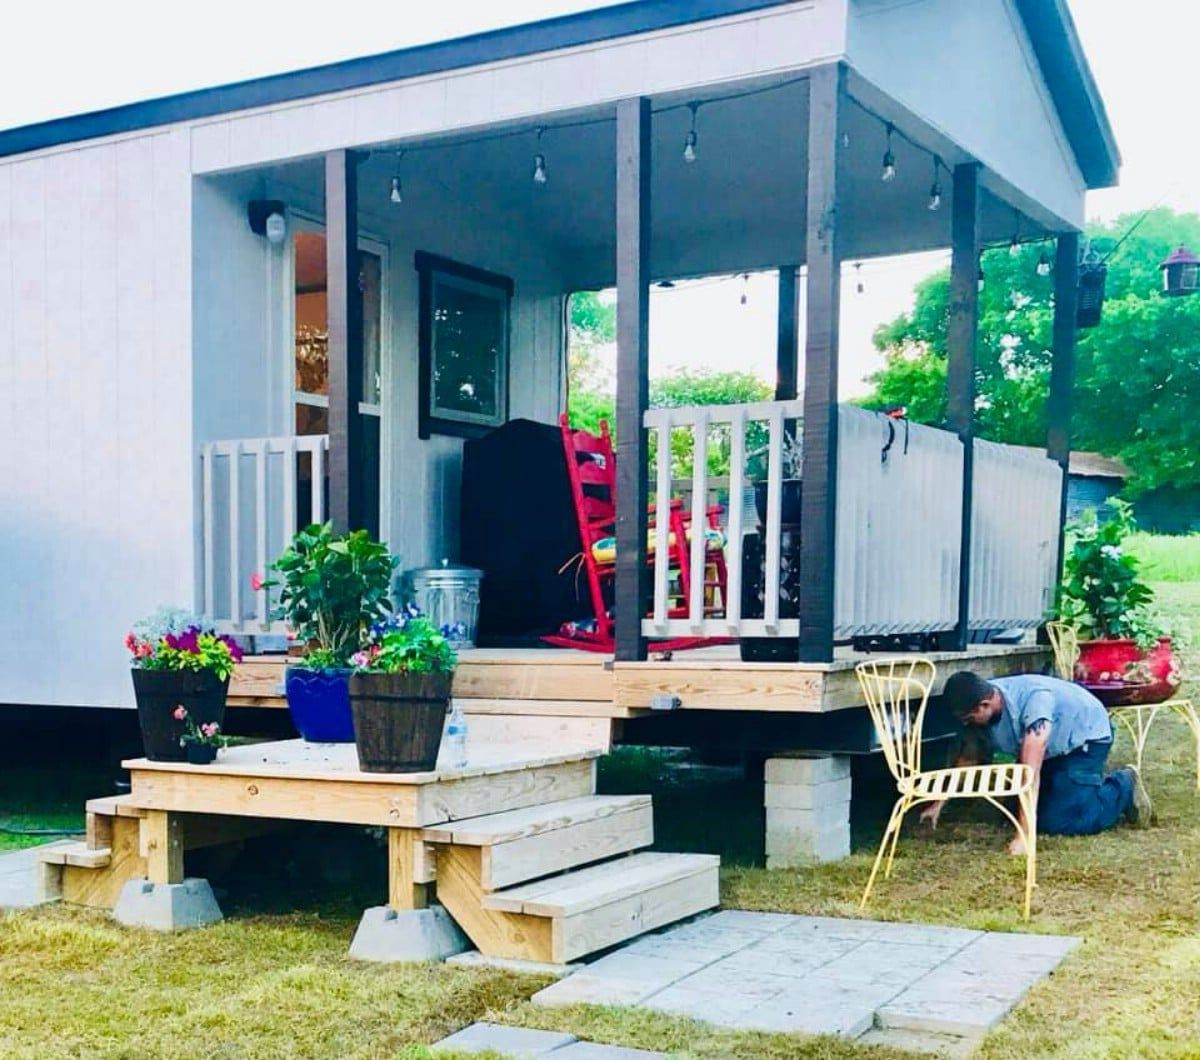 399-Square-Foot Tiny House With Ample Storage Space